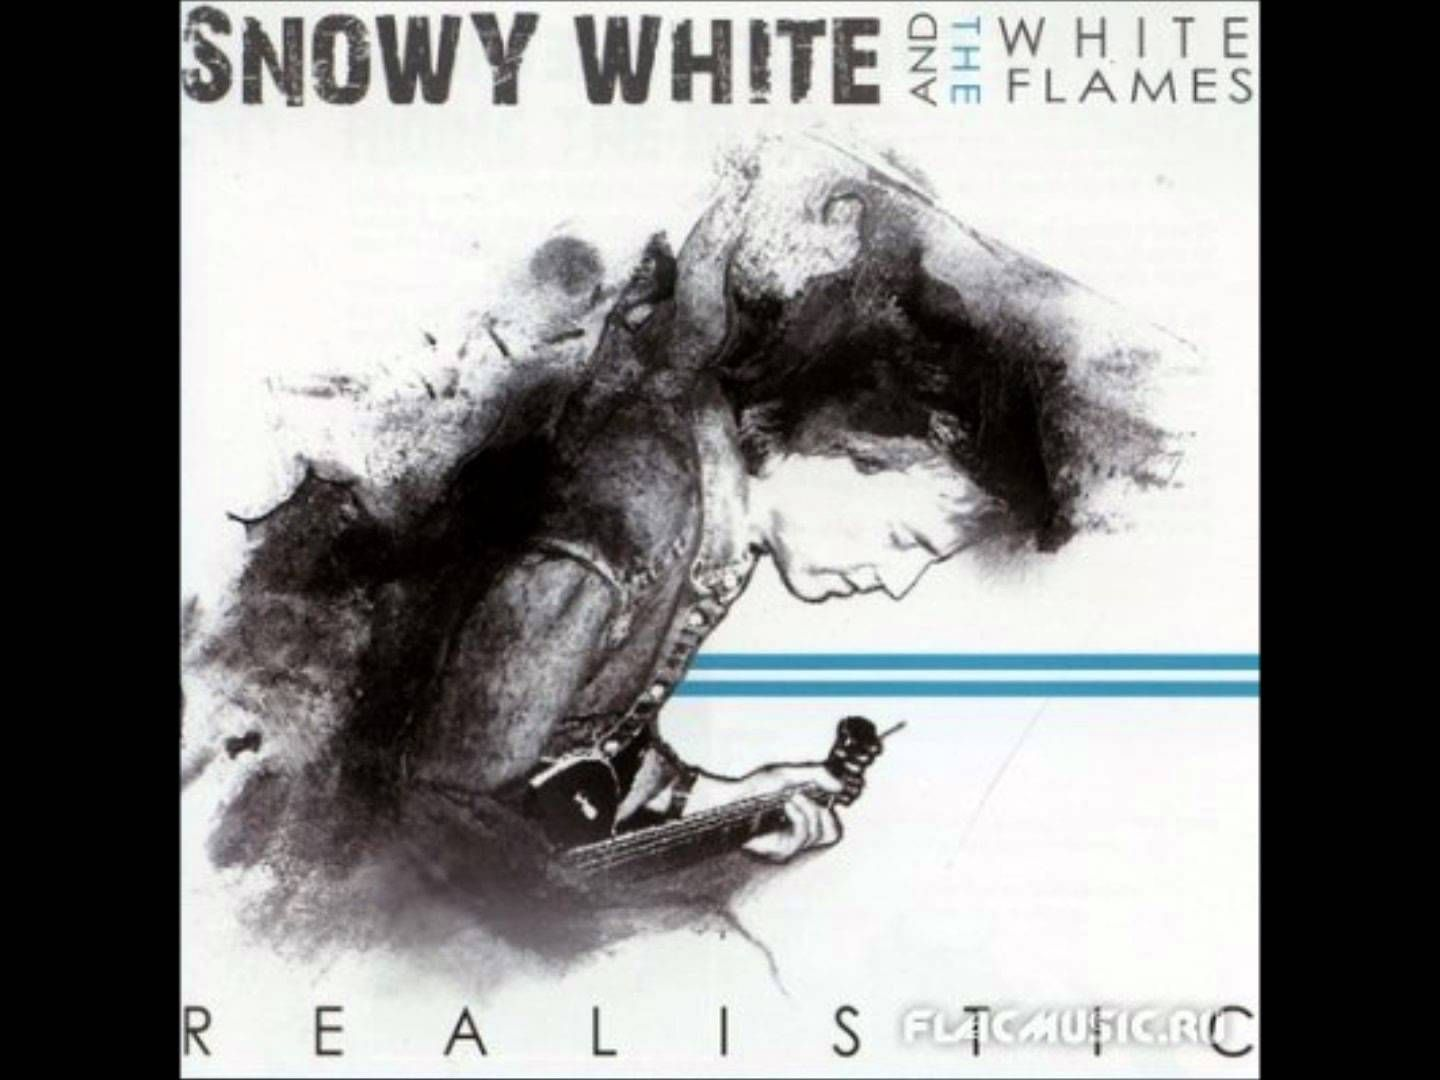 Snowy White & The White Flames - Another Story Told